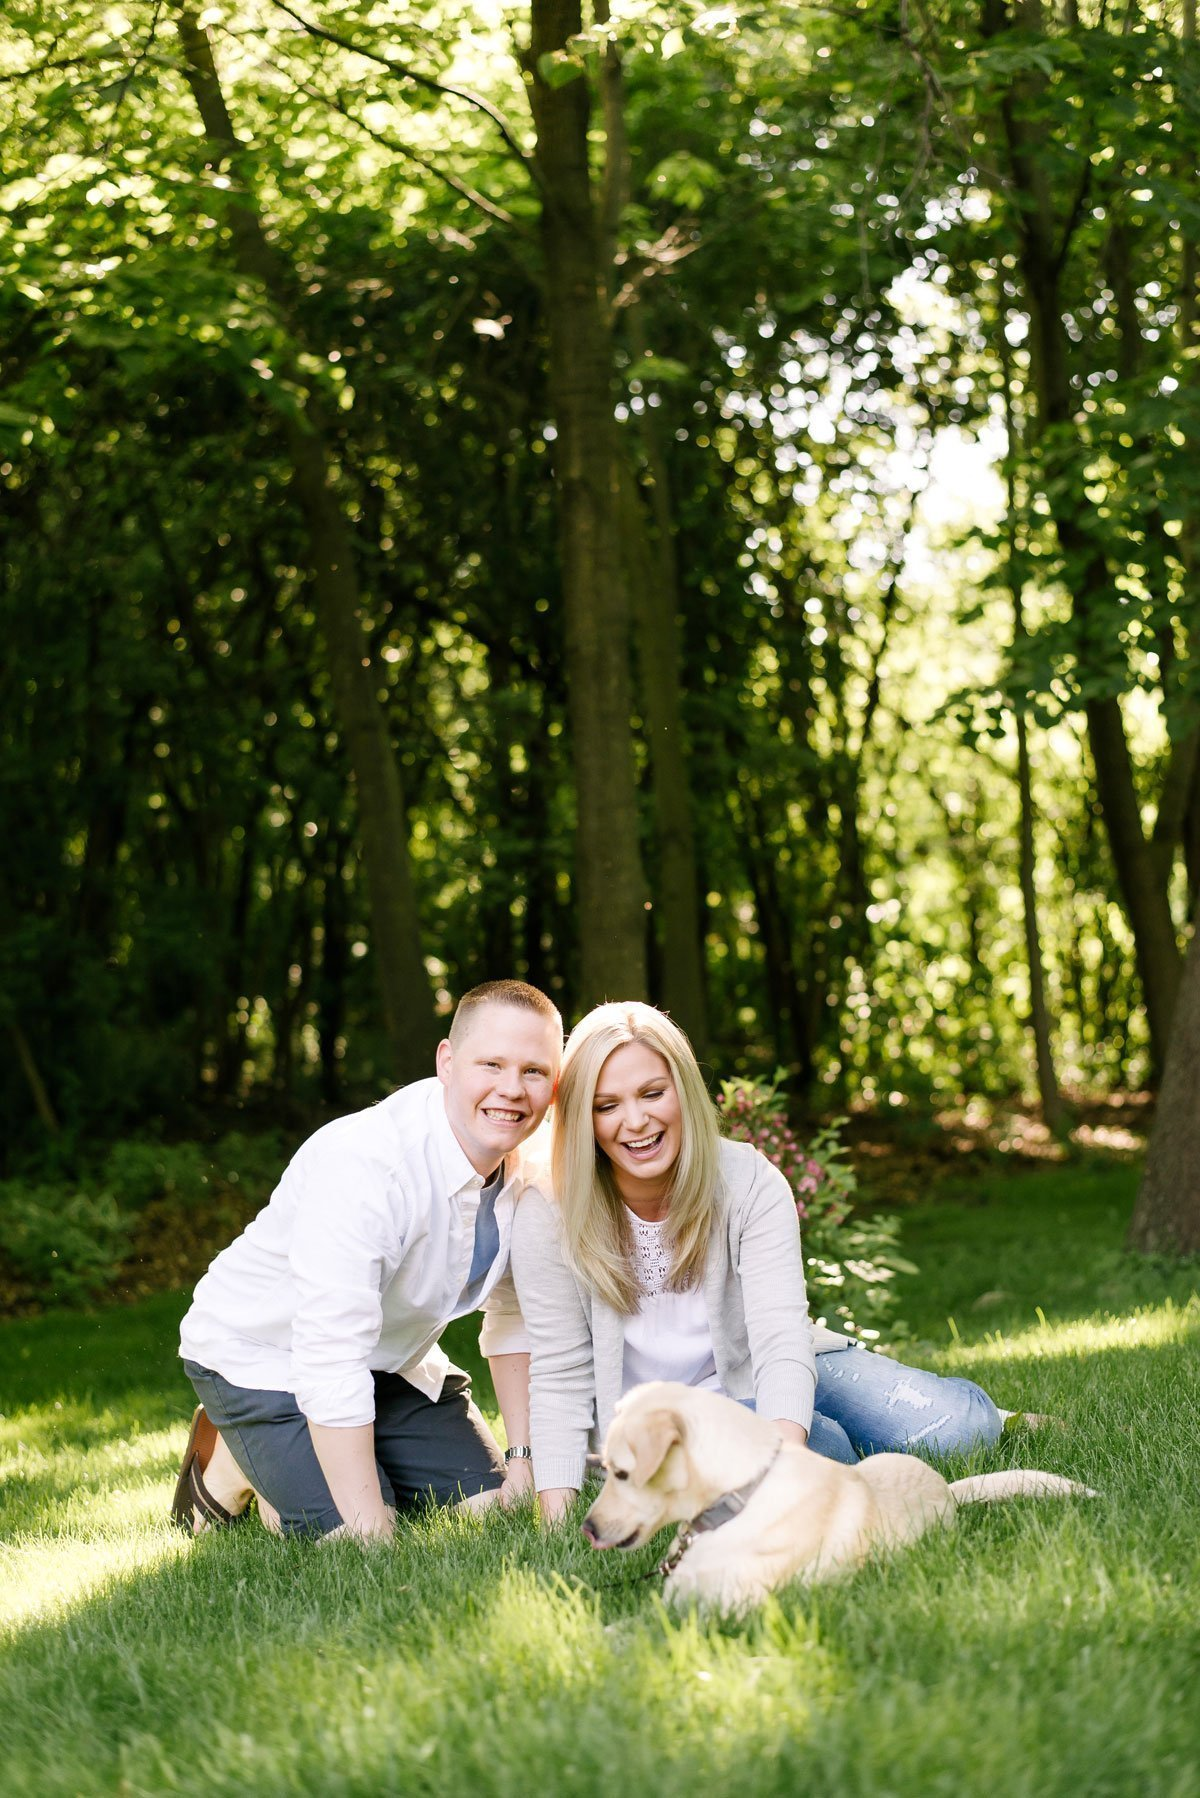 couples lifestyle photo session outside with dog